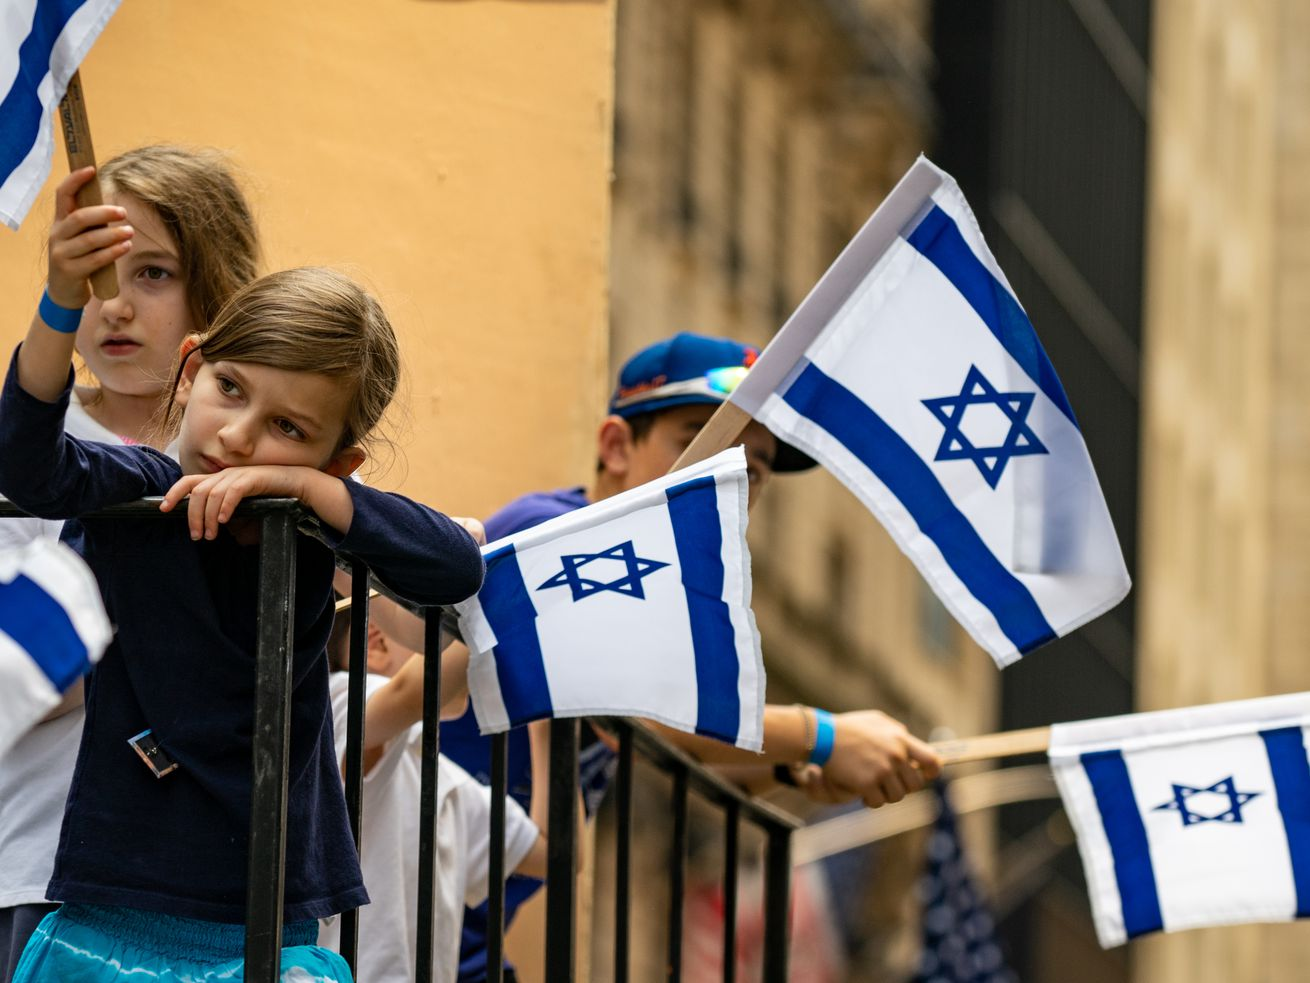 American Jews are taught a very specific Israel narrative. Can that change?